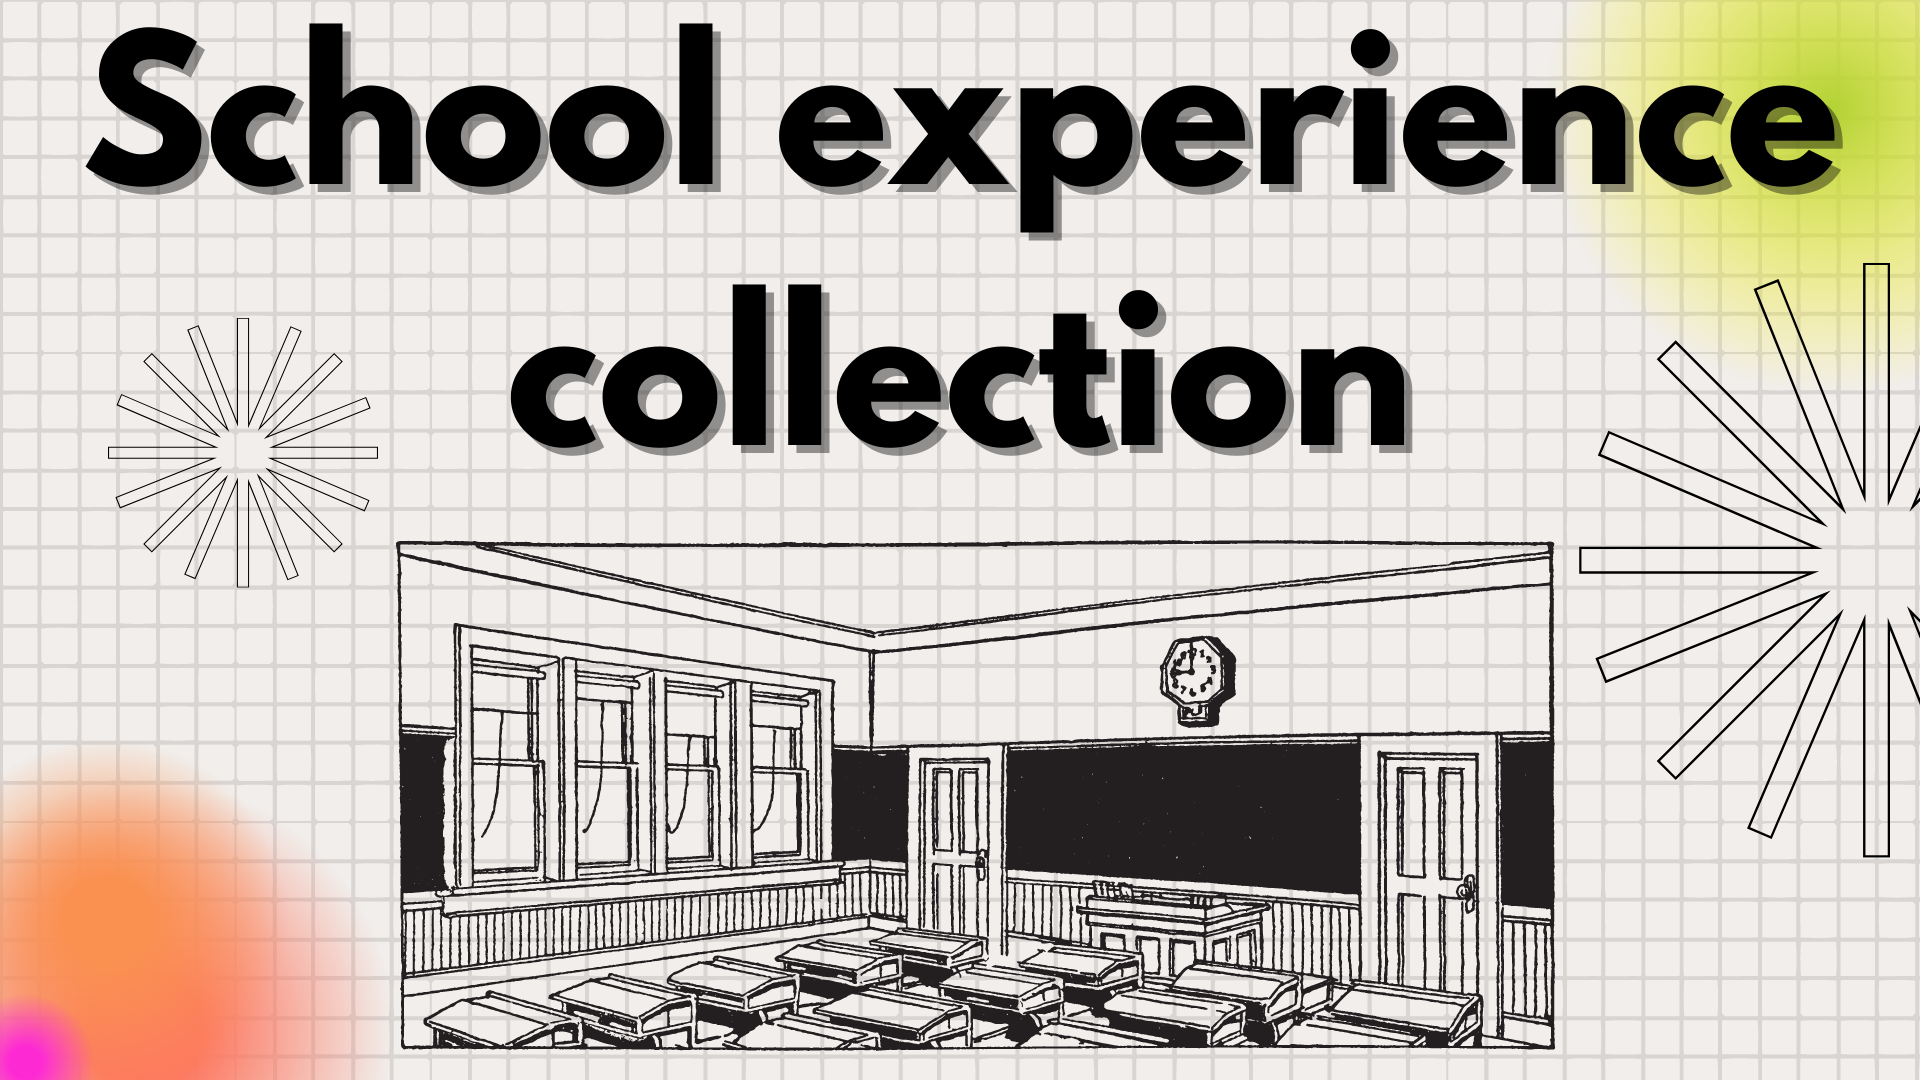 Link to the school experience collection